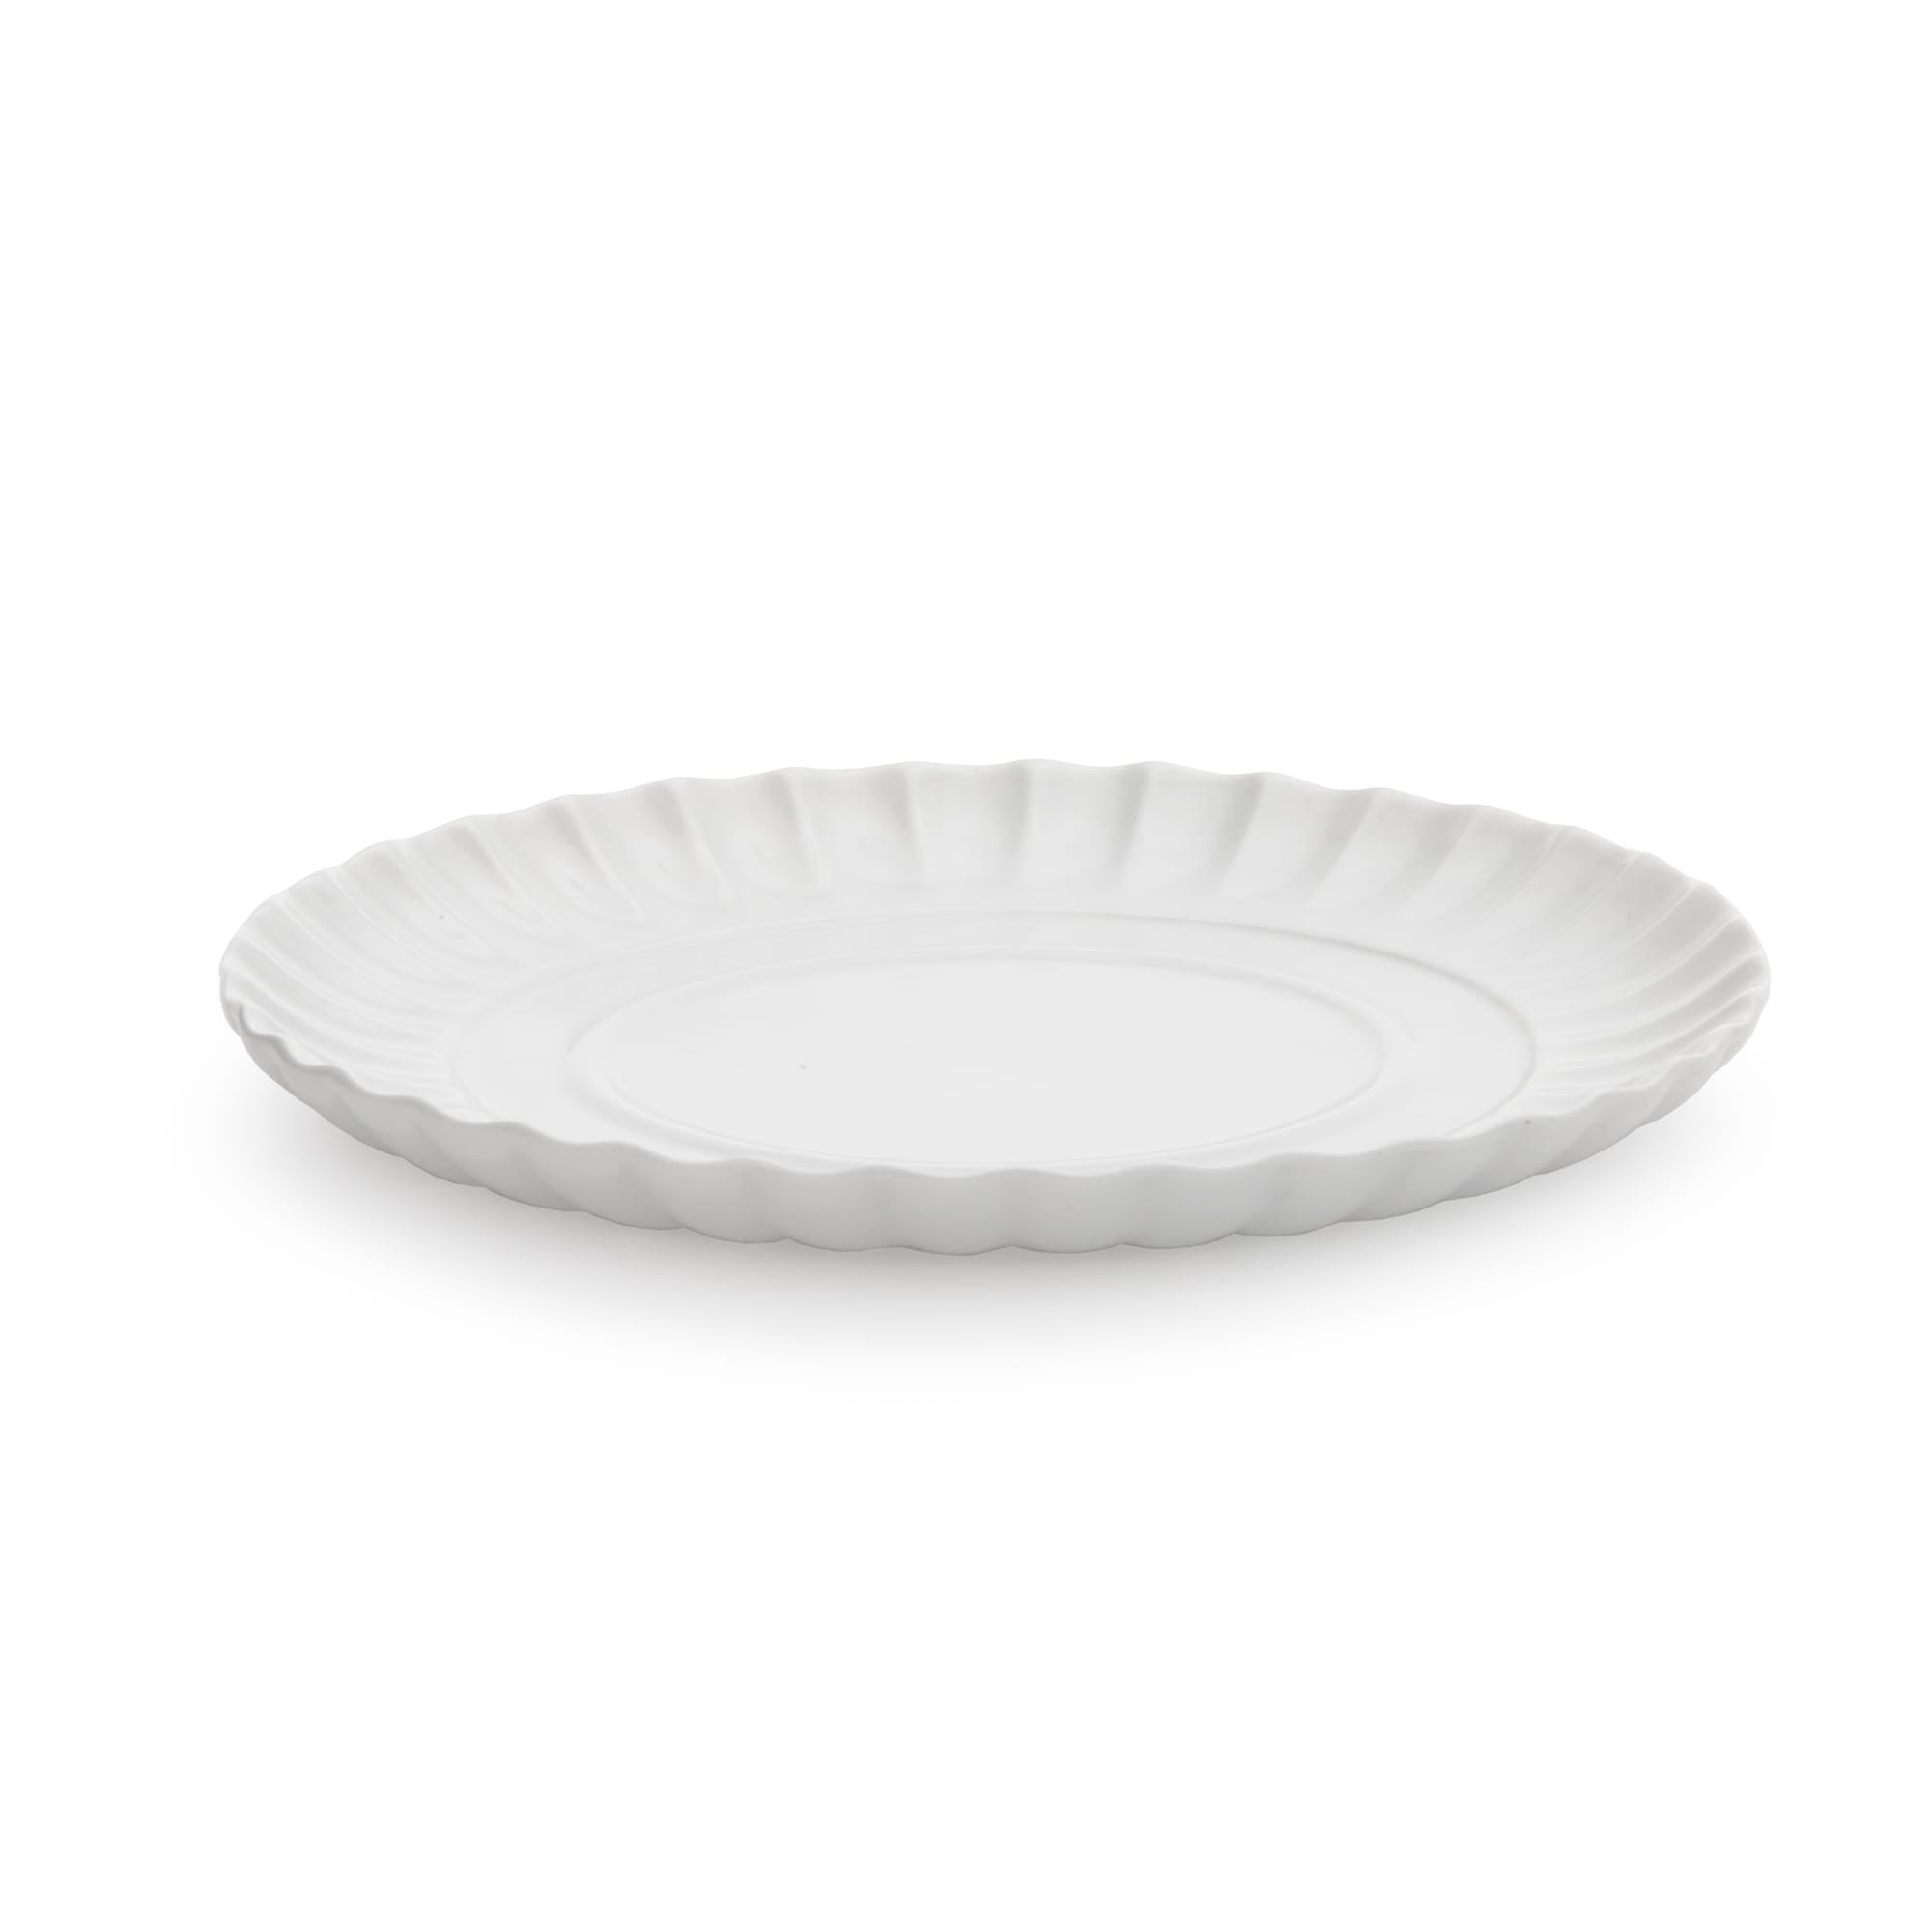 Set of 6 Estetico Quotidiano The Small Ripple Tray design by Seletti